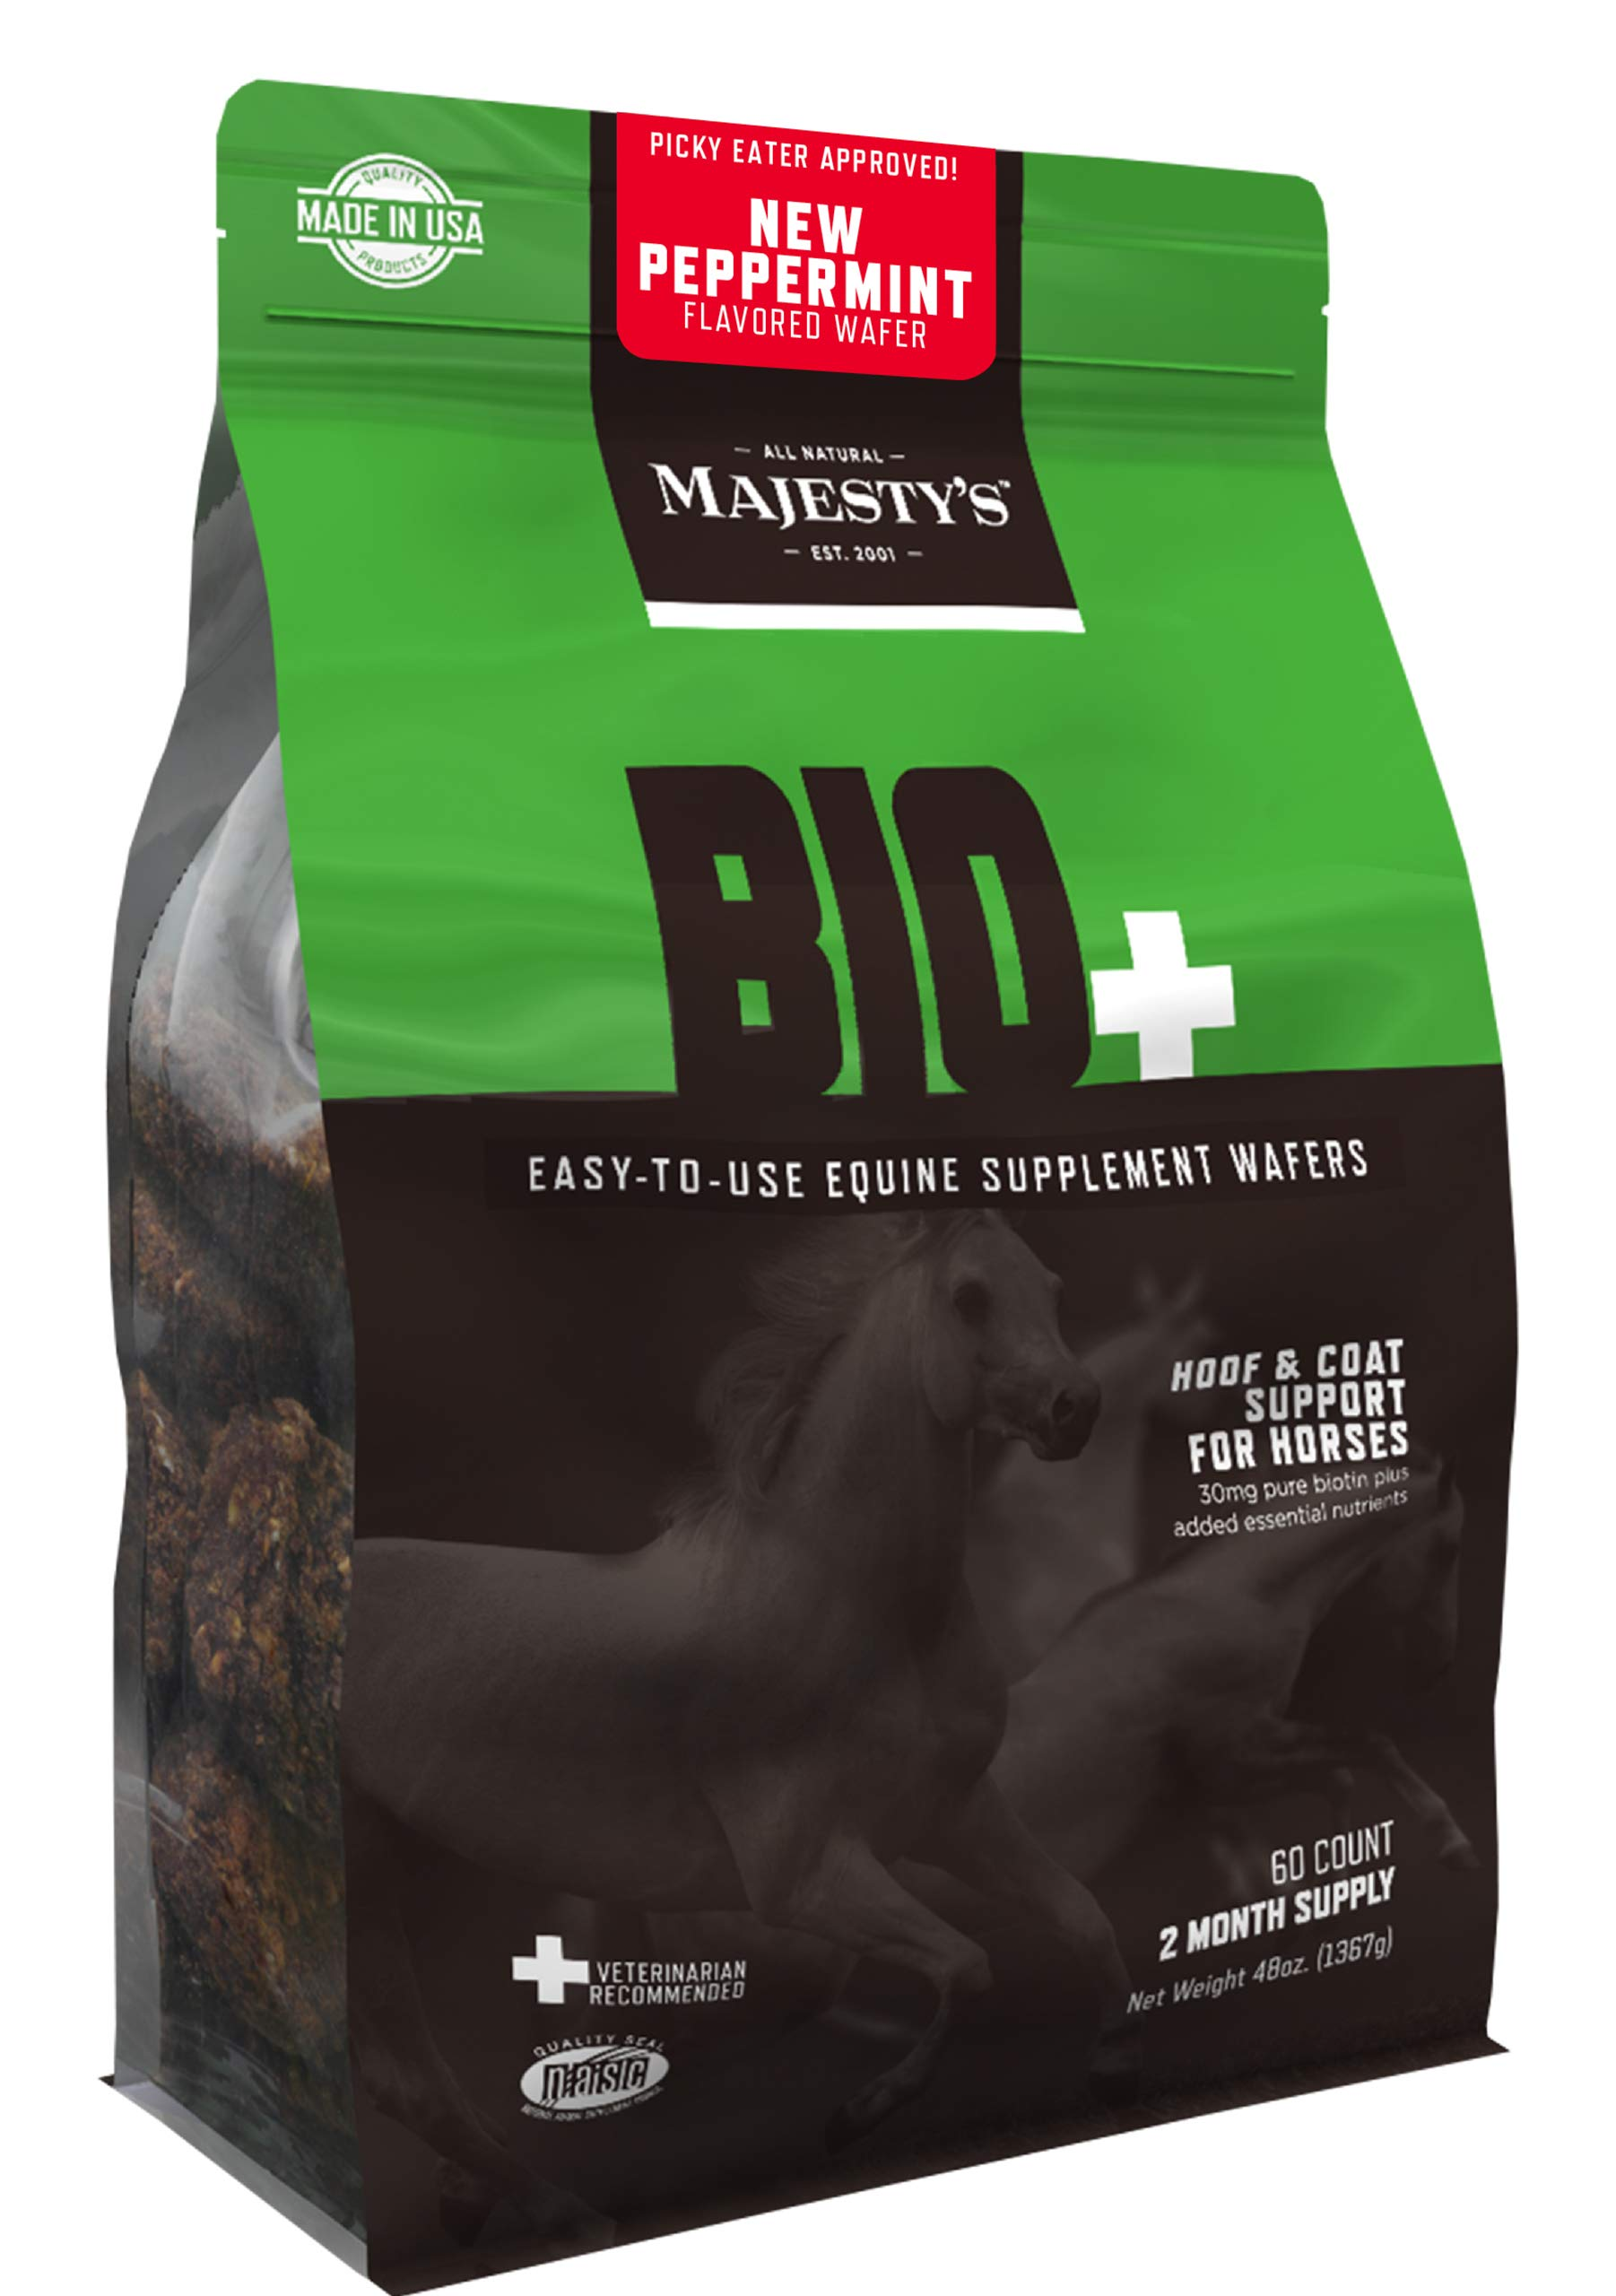 Majesty's Bio+ Peppermint Wafers - Horse/Equine Hoof & Coat Support Supplement - Pure Biotin, Lysine, Methionine, Zinc - Healthier Coats/Hair/Skin & Stronger Hooves - 2 Month Supply (1 Bag/60 Count) by Majesty's